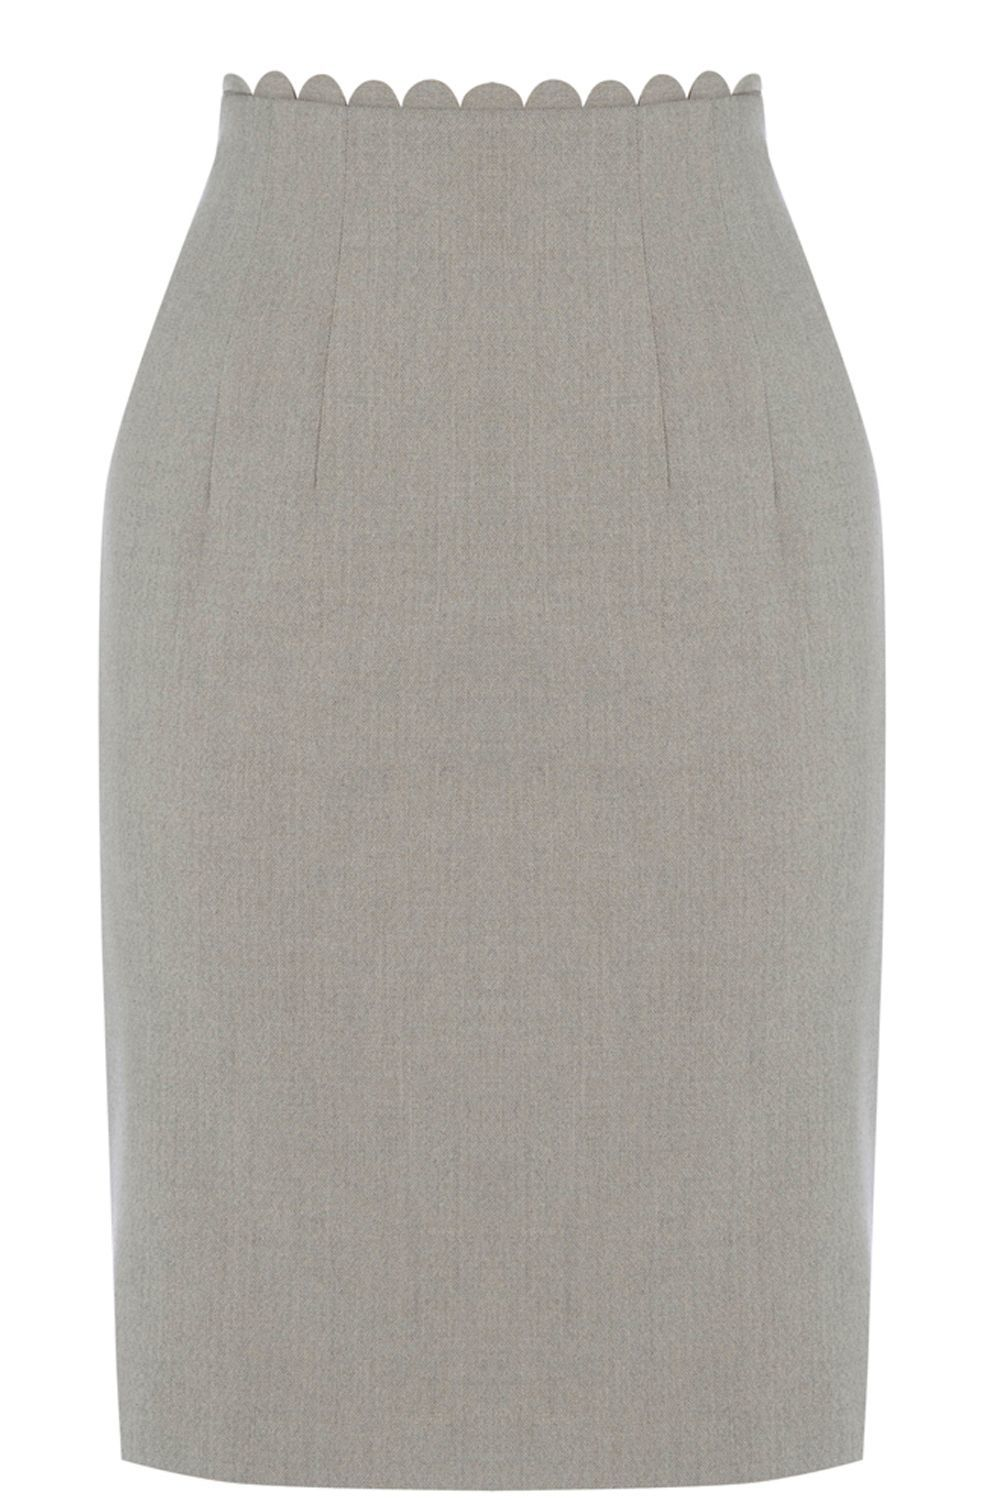 Clara Workwear Skirt, Grey - pattern: plain; style: pencil; fit: tailored/fitted; waist: mid/regular rise; predominant colour: light grey; occasions: work; length: just above the knee; fibres: polyester/polyamide - stretch; pattern type: fabric; texture group: woven light midweight; season: s/s 2016